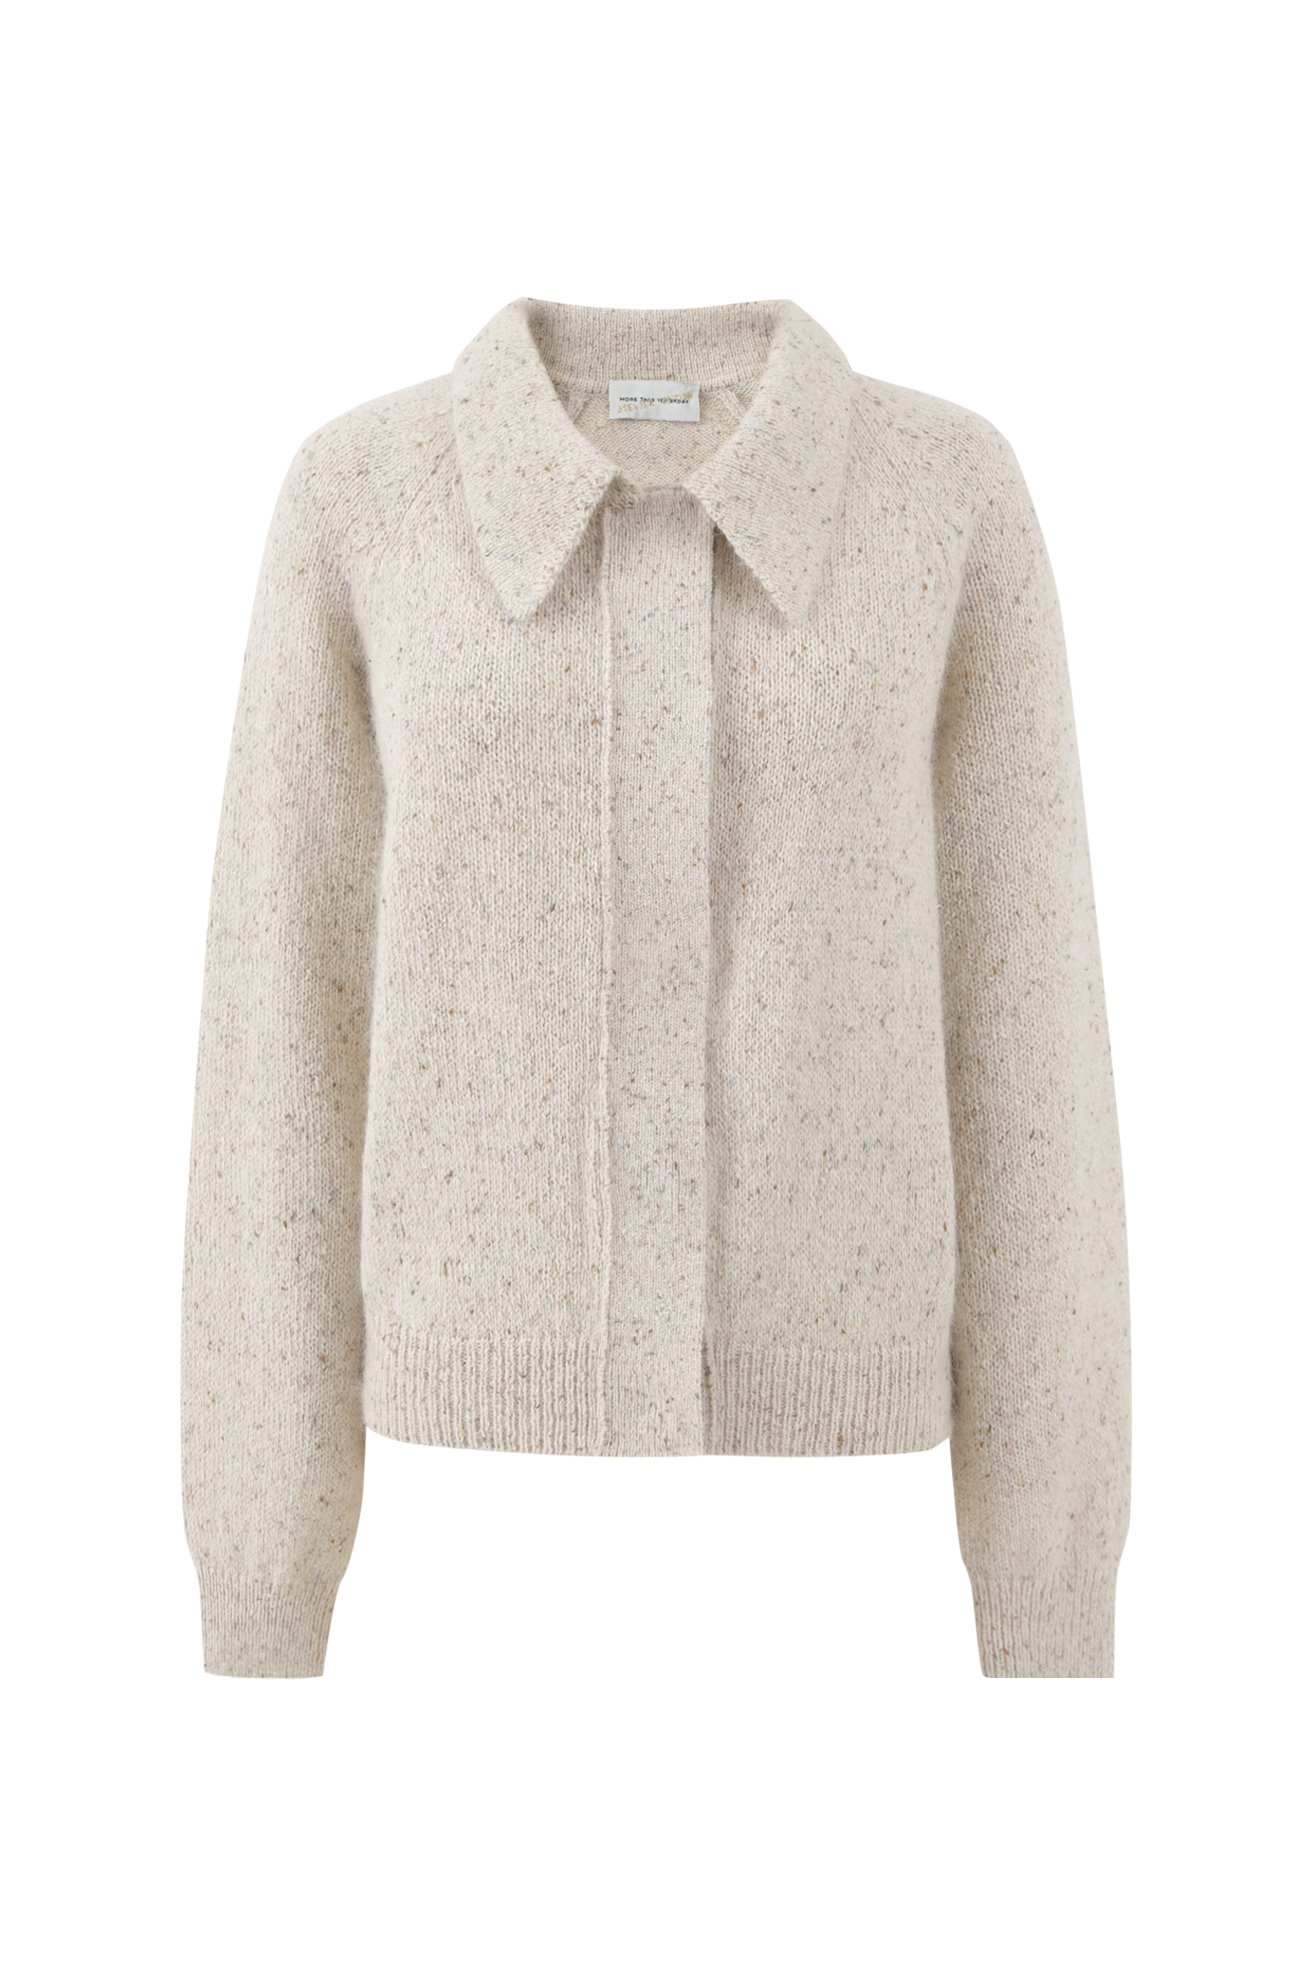 Silky Mohair Cardigan (IVORY)ATELIER EDITION